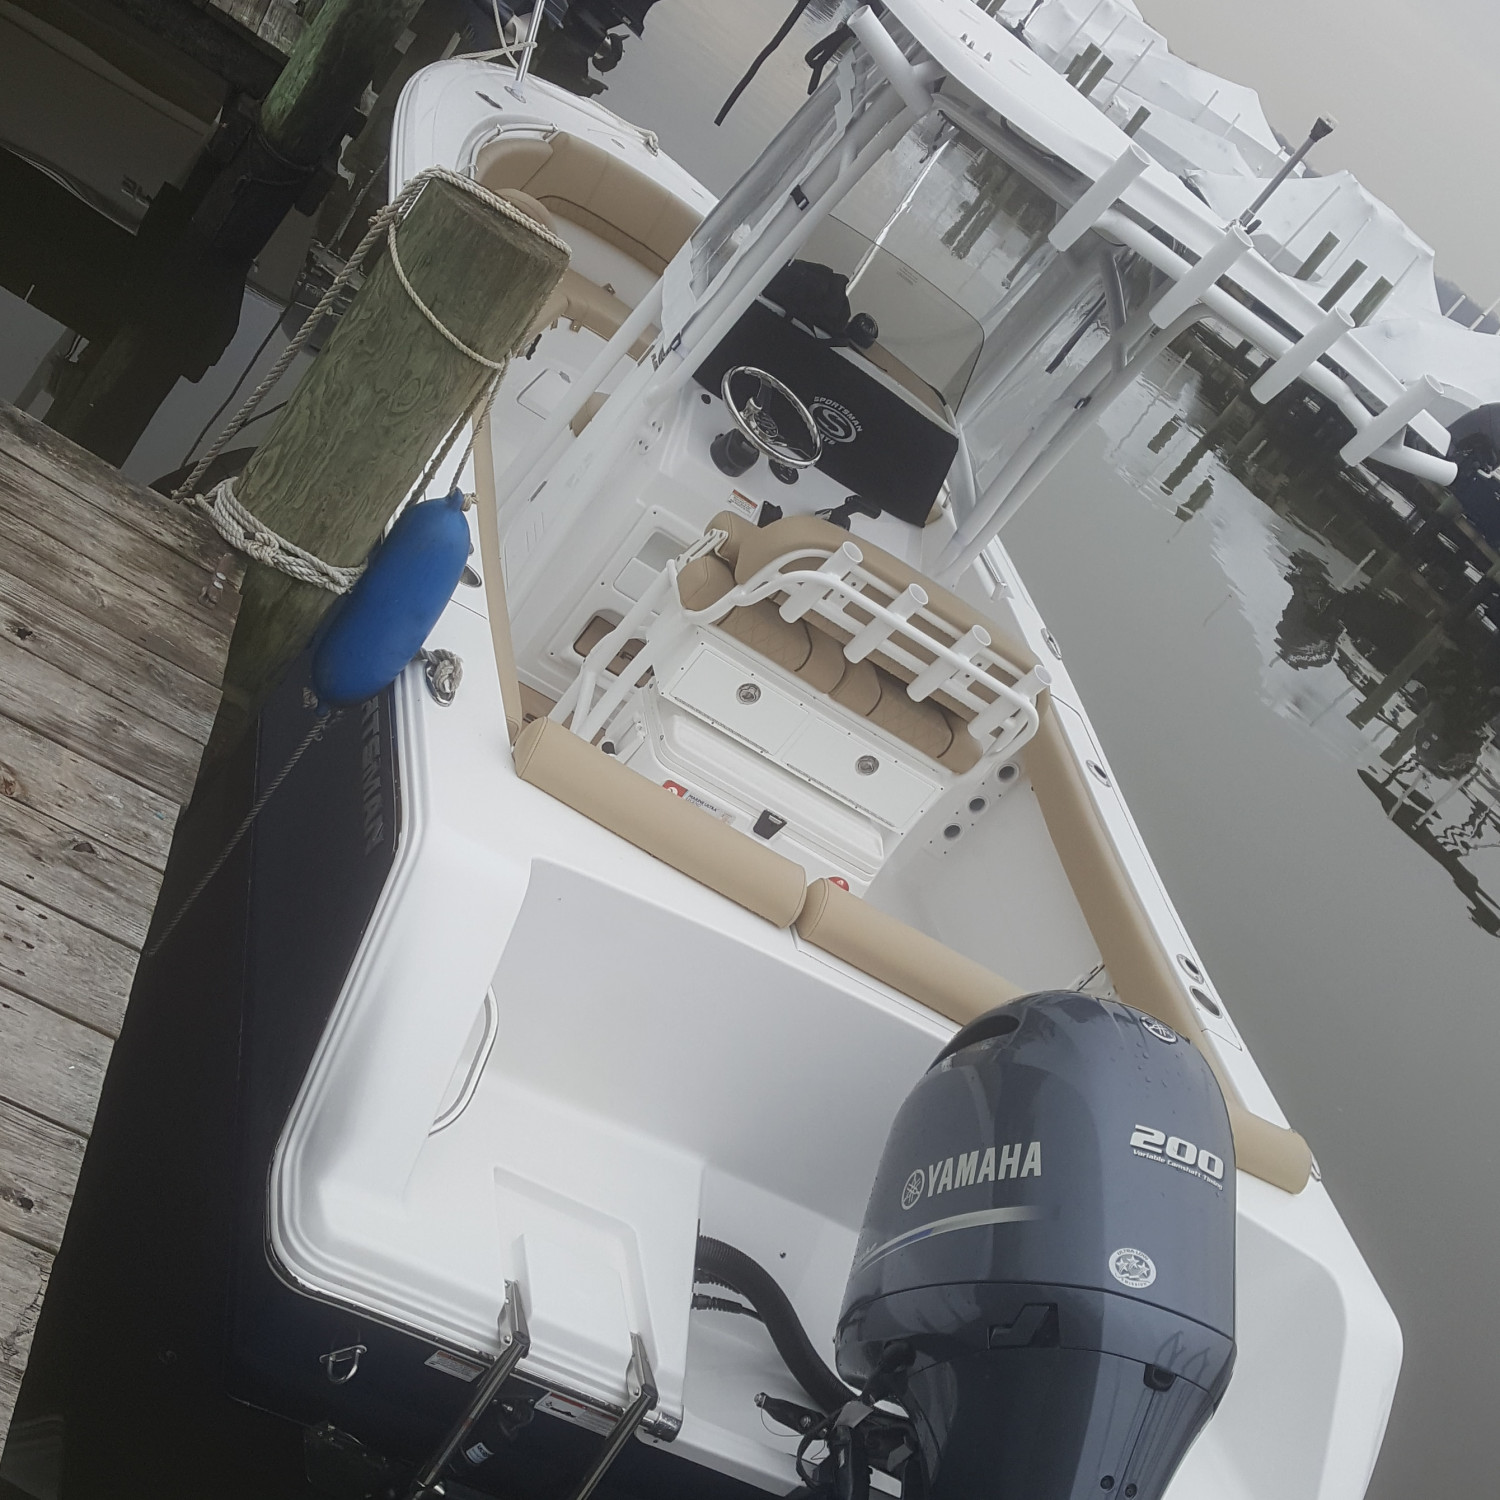 Title: My first boat!!! - On board their Sportsman Heritage 231 Center Console - Location: Queenstown, MD. Participating in the Photo Contest #SportsmanApril2018